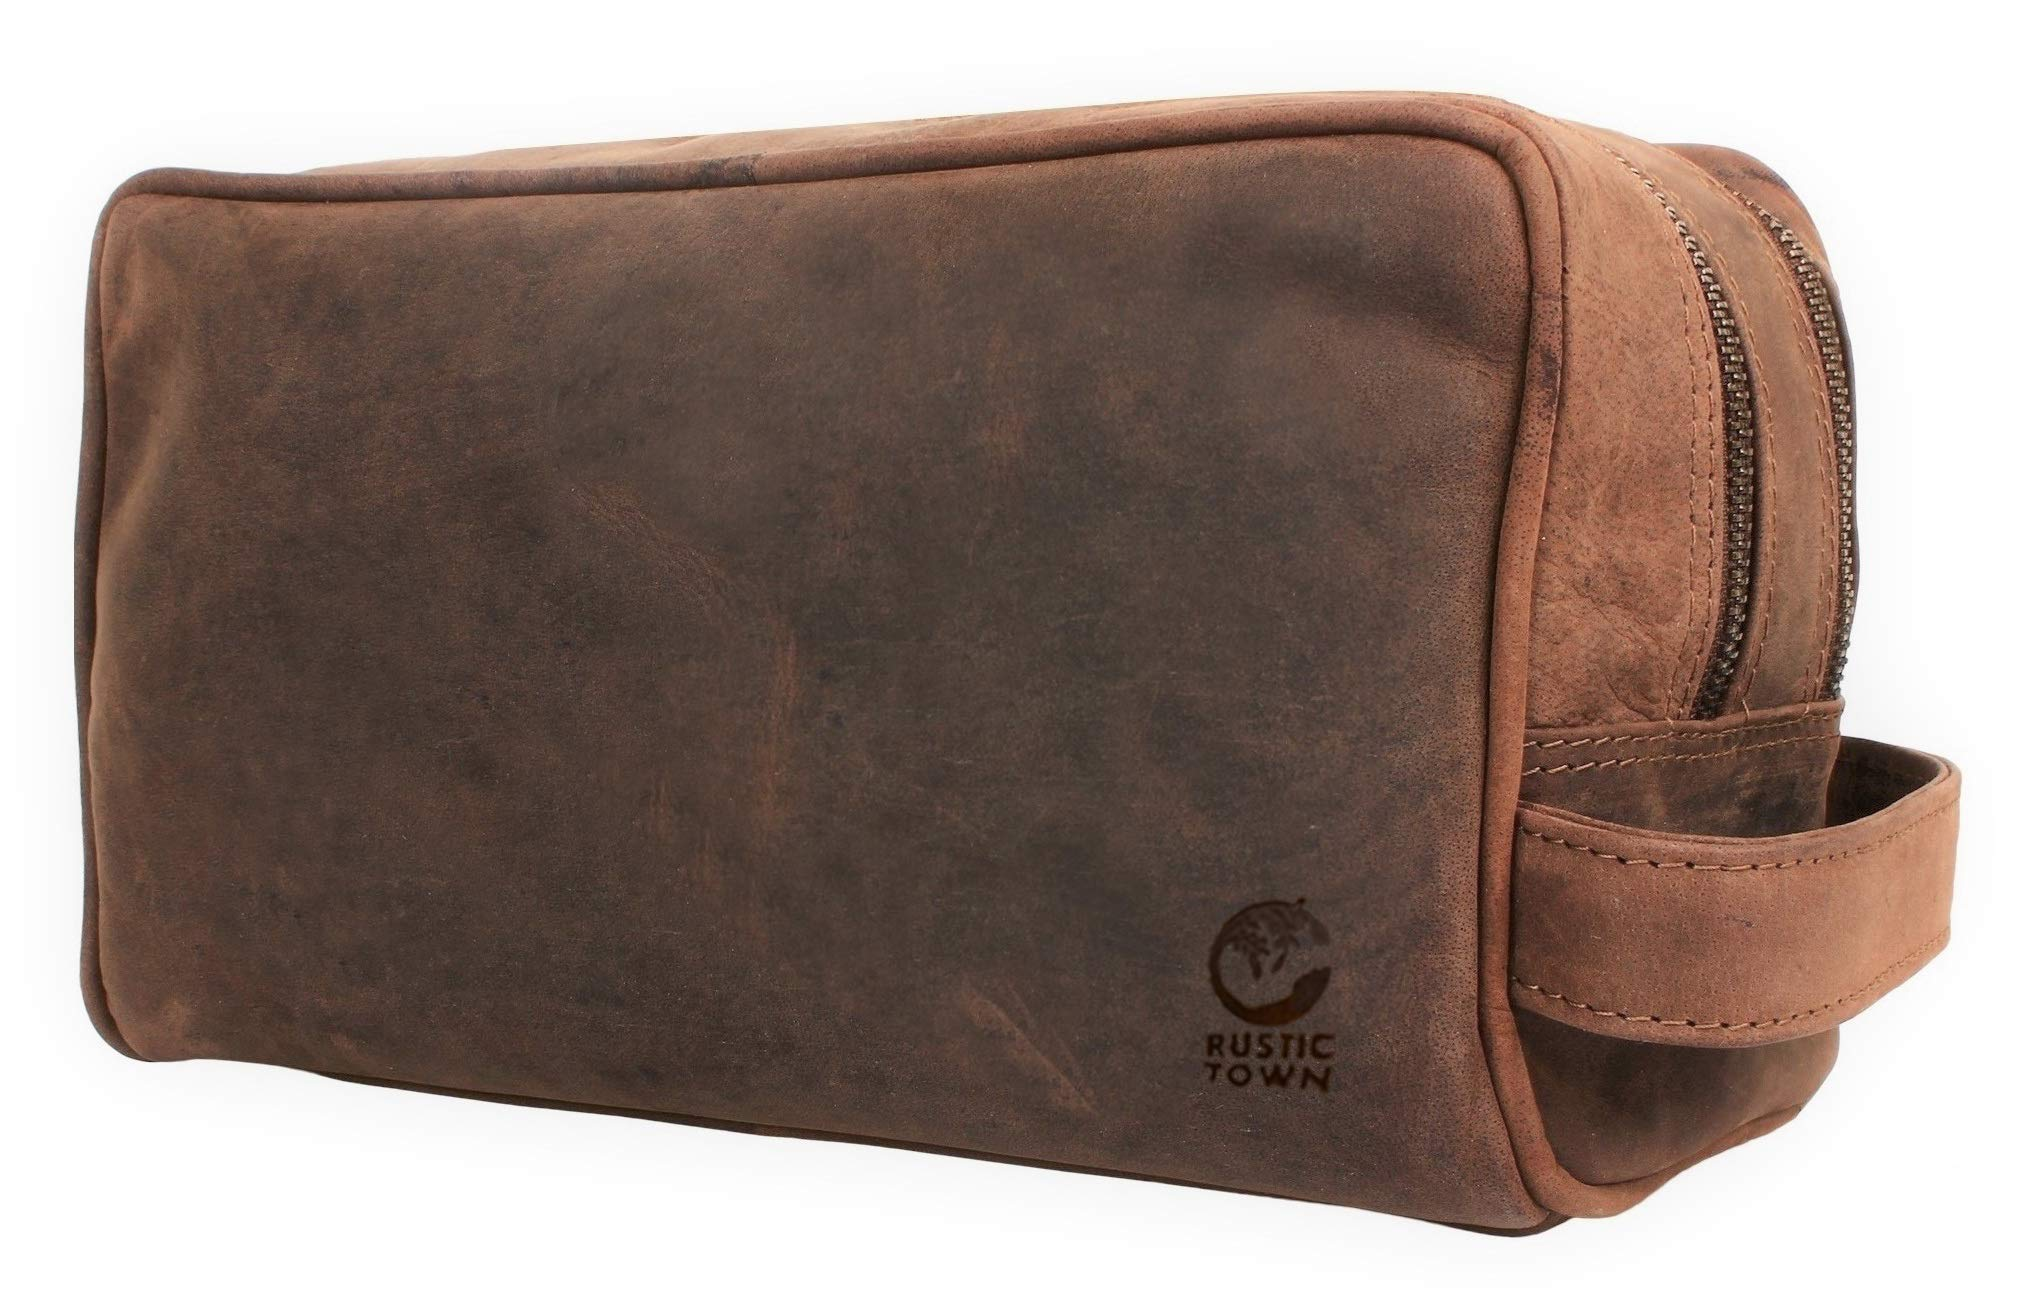 Genuine Leather Travel Toiletry Bag - Dopp Kit Organizer By Rustic Town (Dark Brown) by Rustic Town